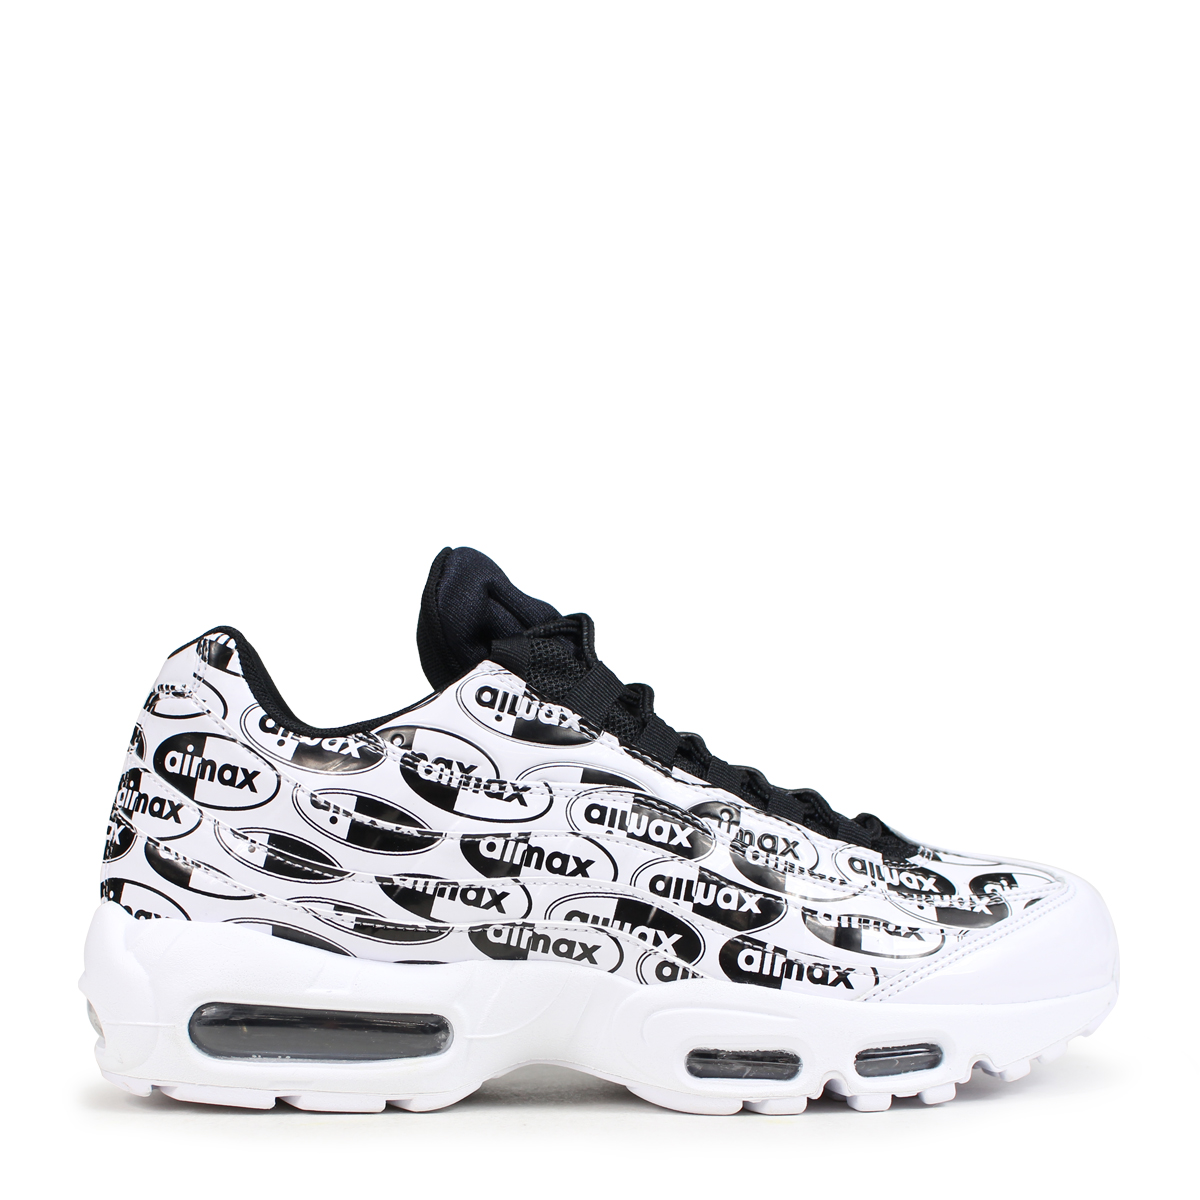 cheap for discount a2a73 e1a7b ... Nike NIKE Air Max 95 sneakers men AIR MAX 95 PREMIUM 538,416-103 white  white ...